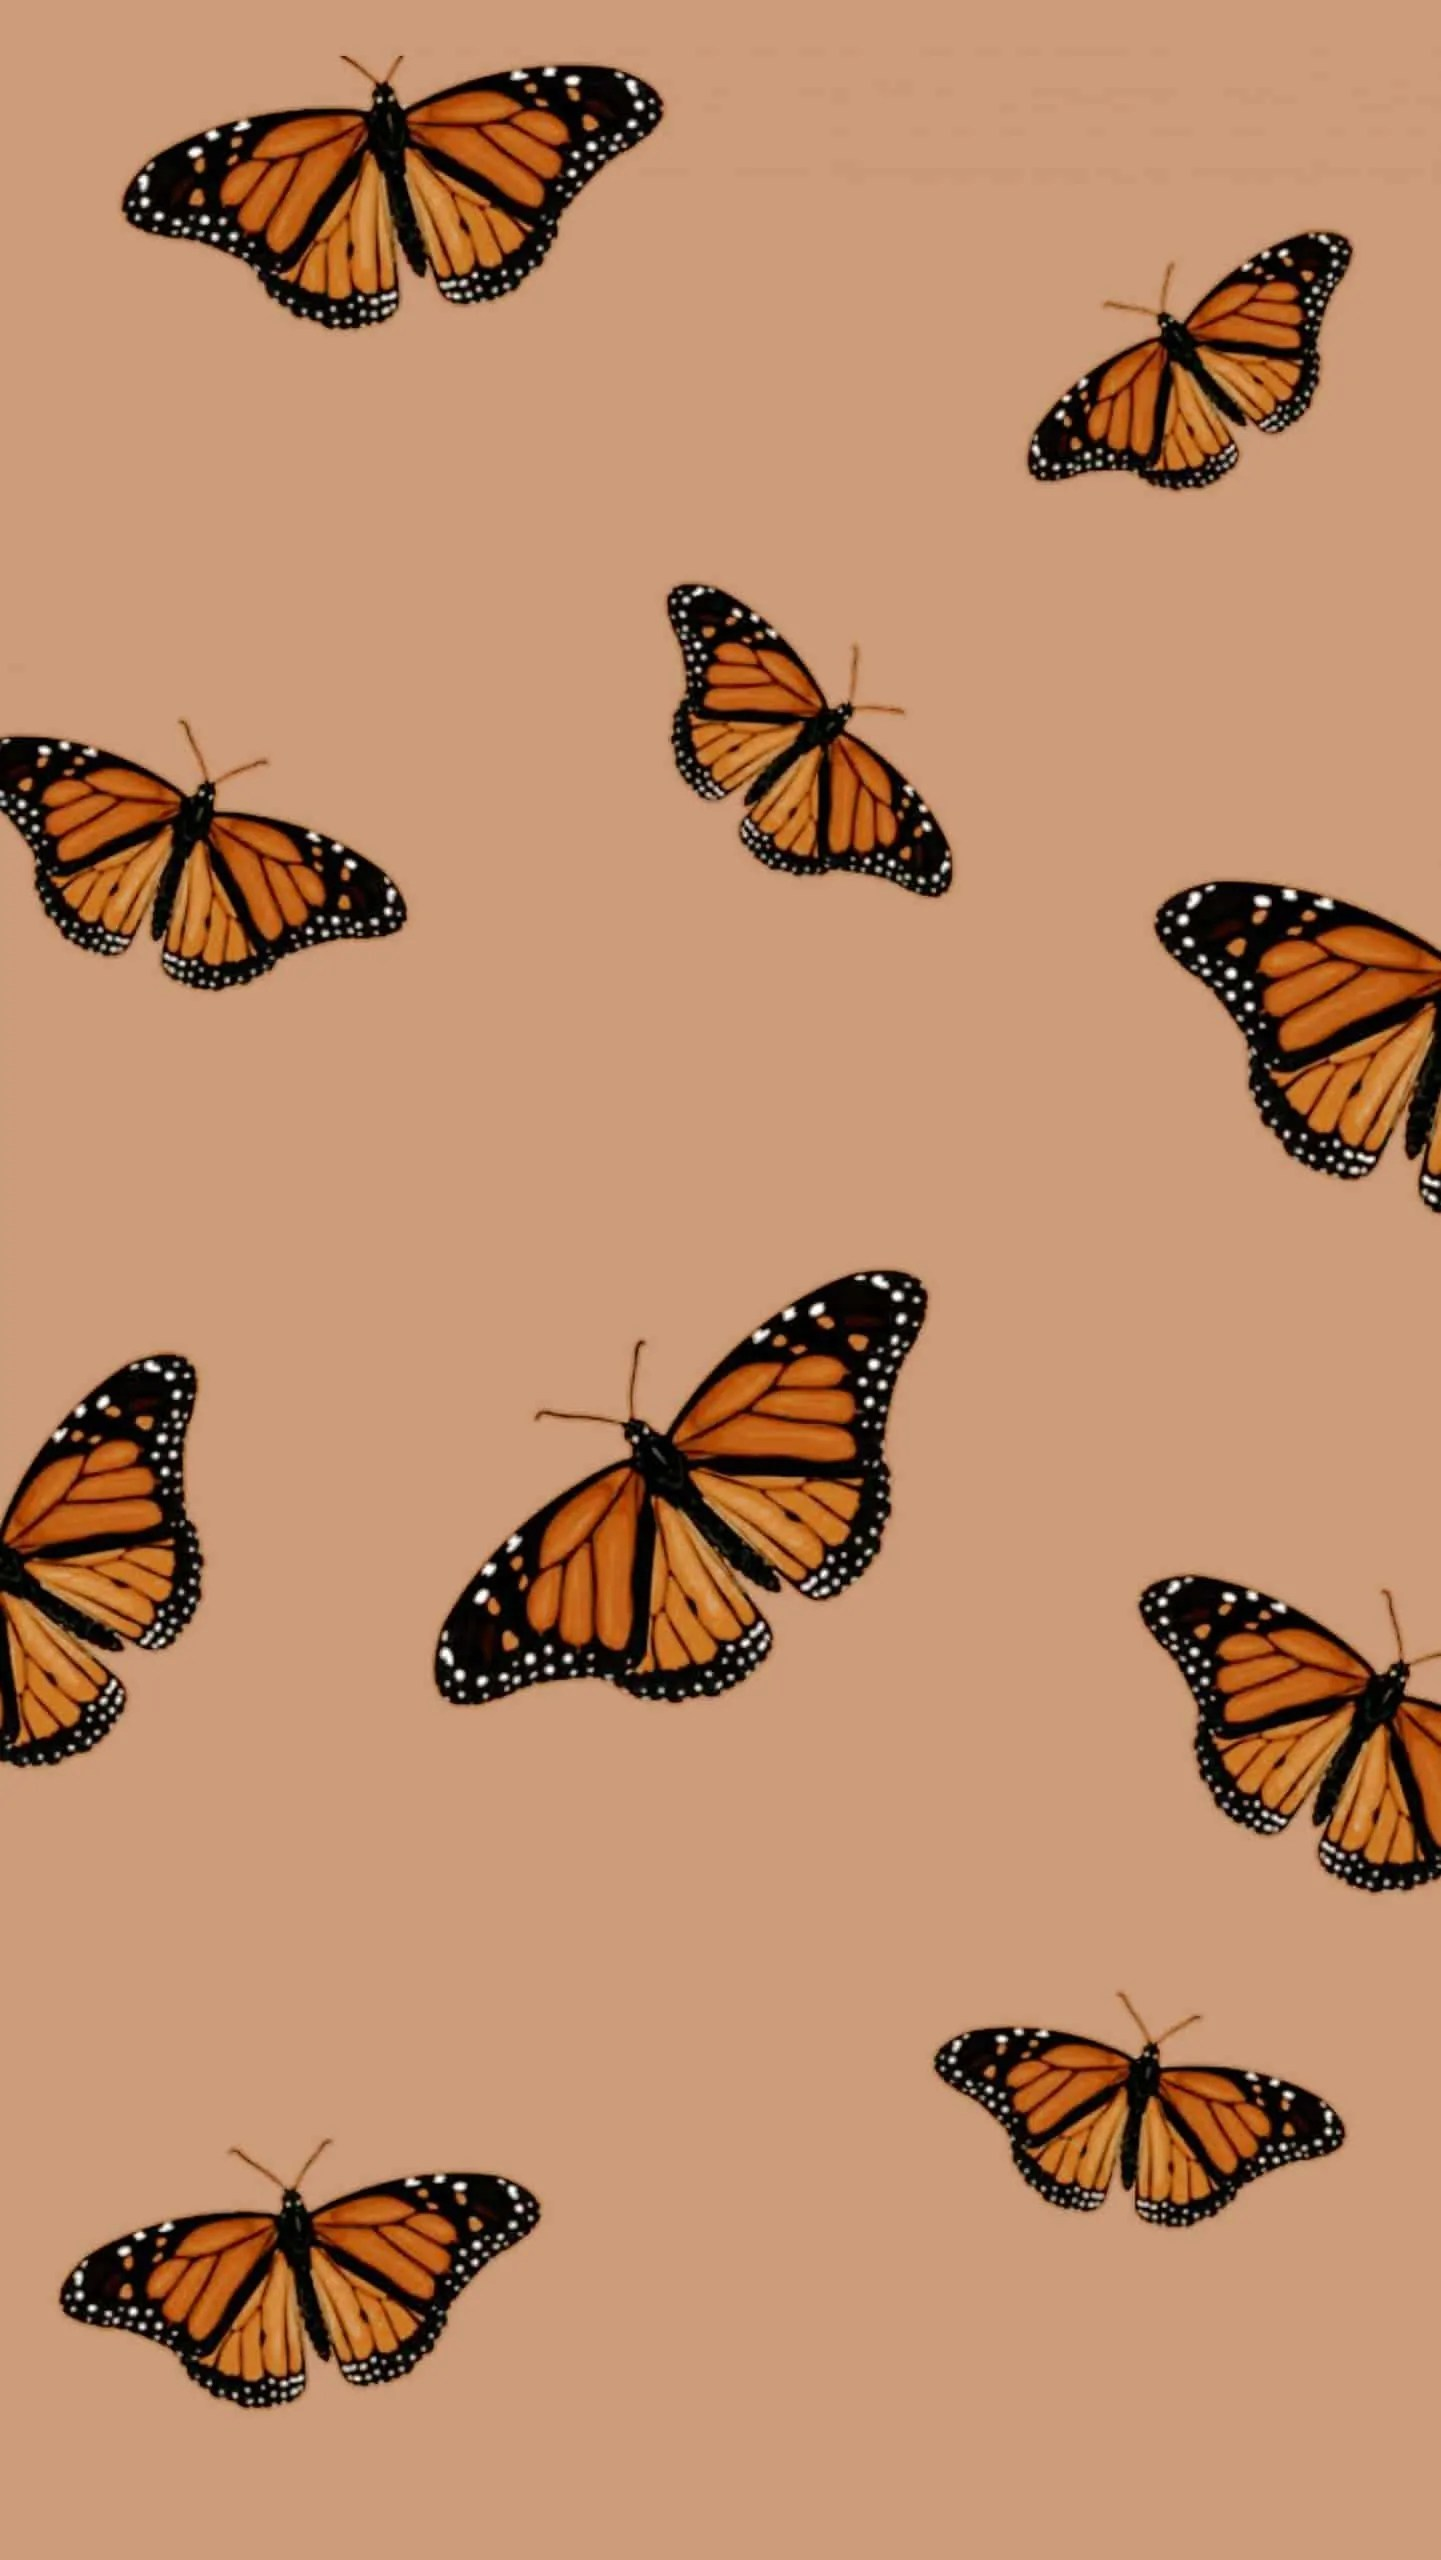 Aesthetic-Butterfly-Phone-Wallpaper-MadeWithPicsArt 5